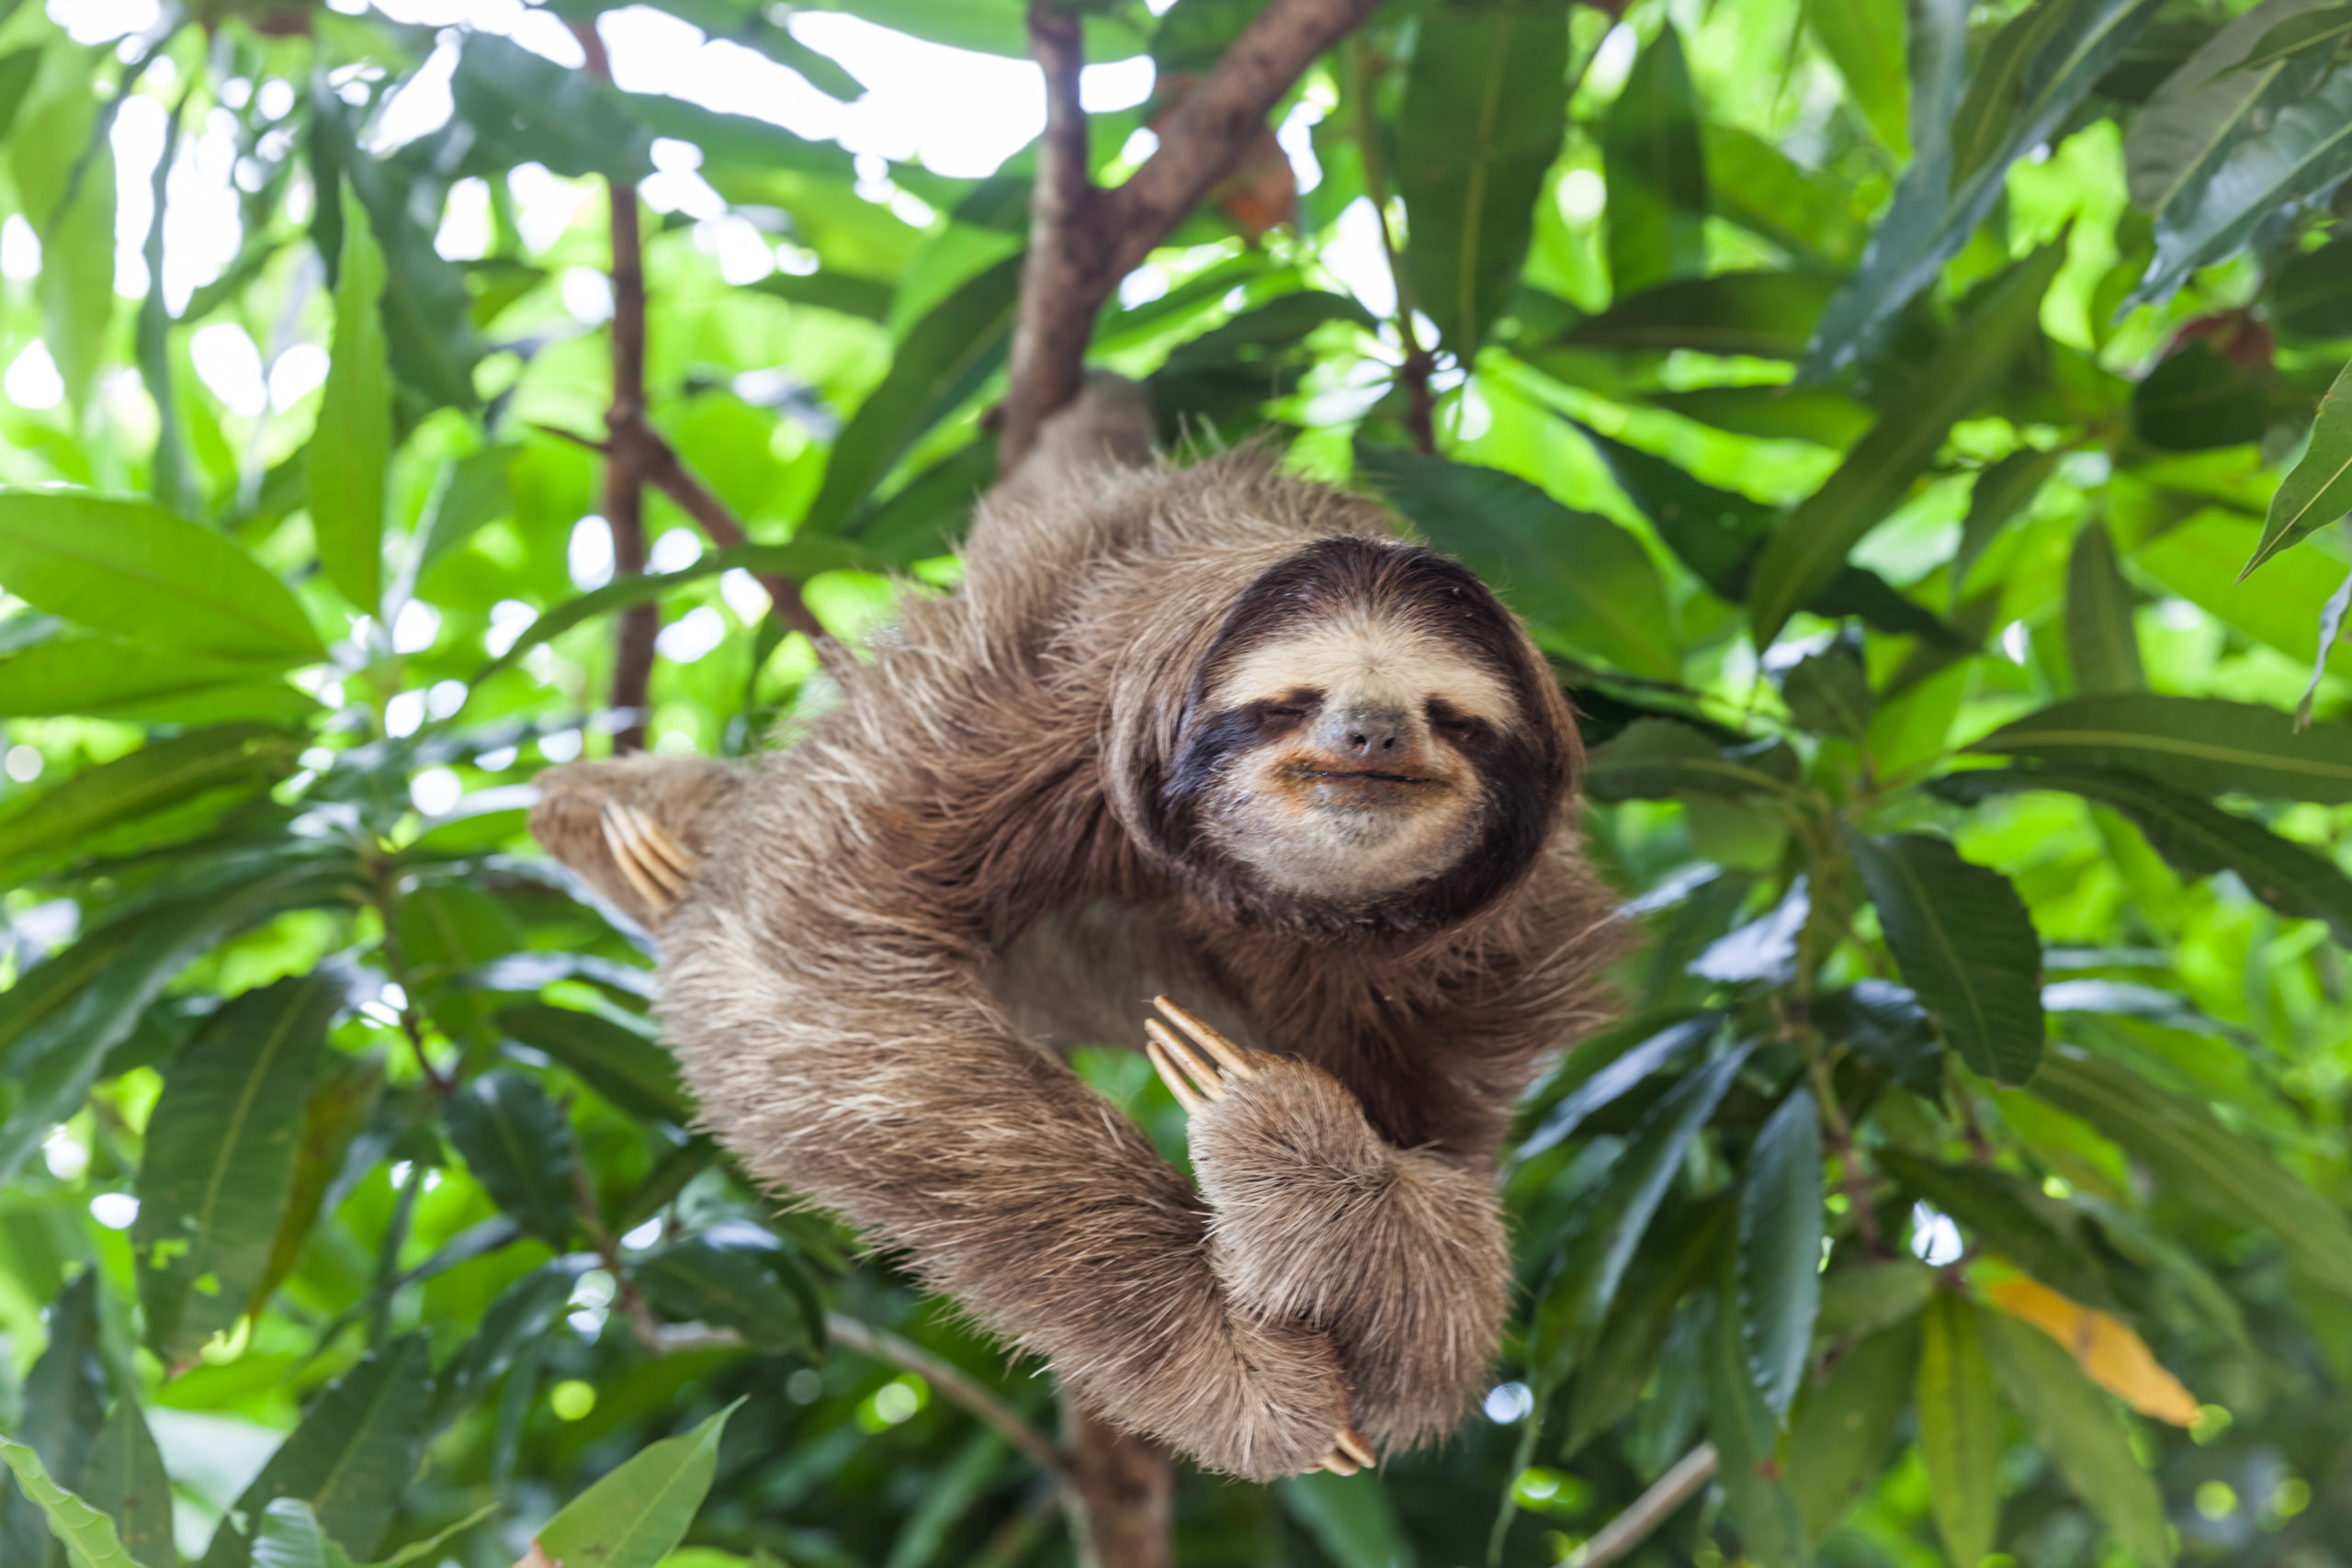 Is it Legal to Own a Pet Sloth in California?